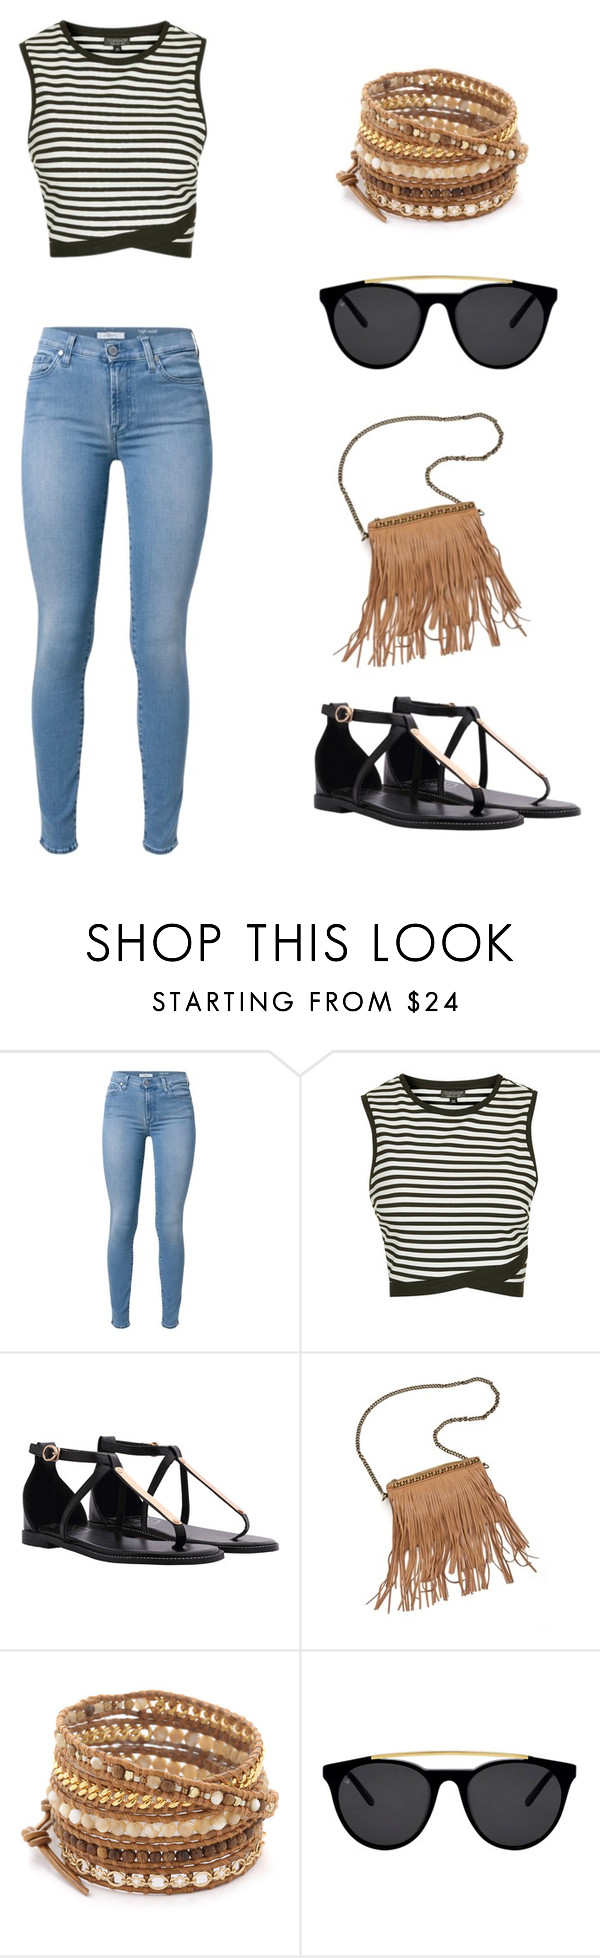 """Untitled #140"" by angela229 ❤ liked on Polyvore featuring 7 For All Mankind, Topshop, Patchington, Chan Luu and Smoke & Mirrors"